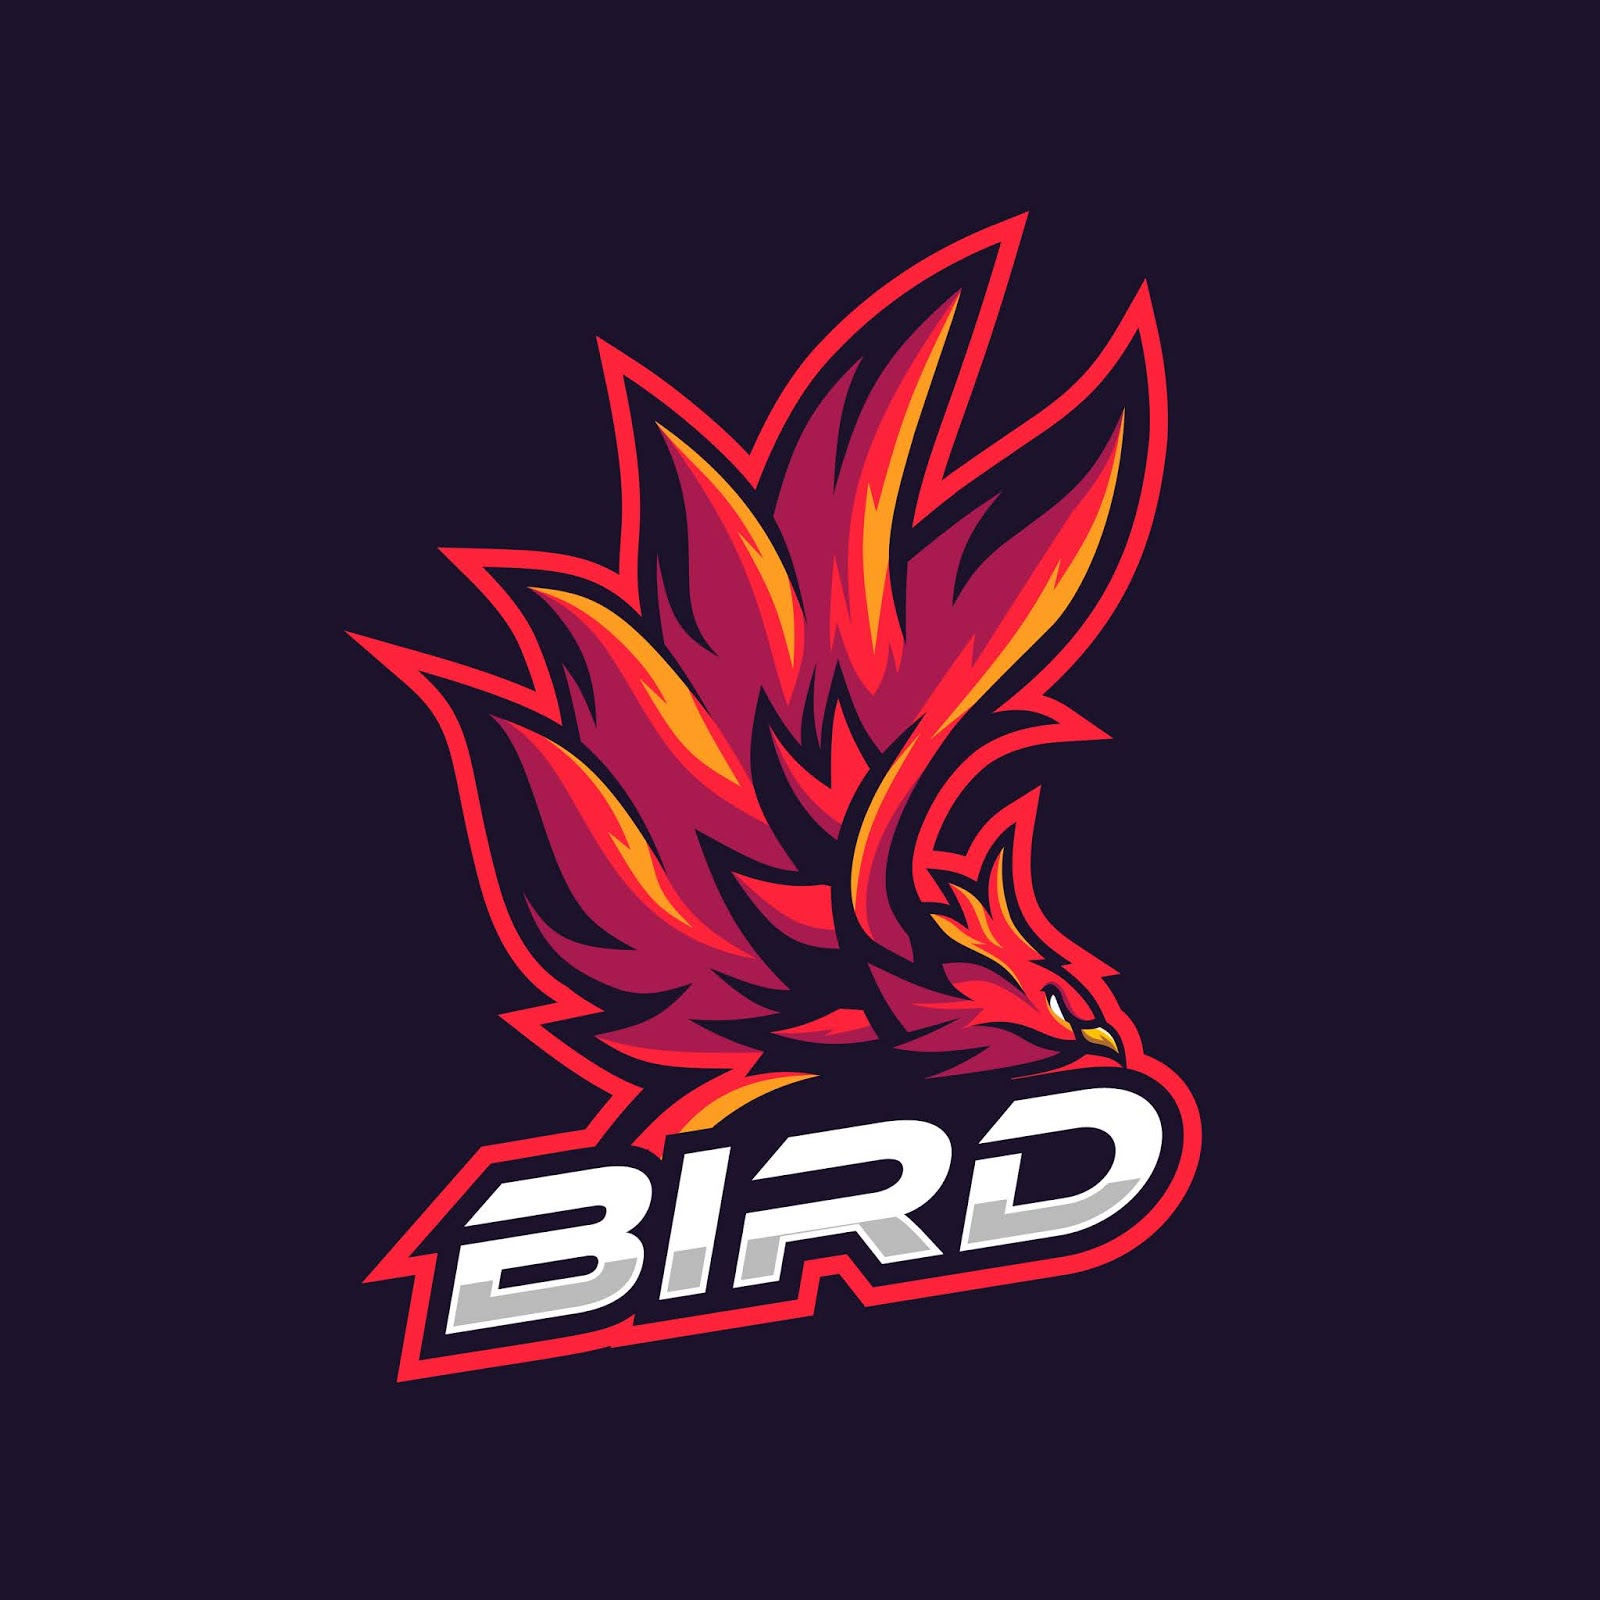 Awesome Red Bird Illustration Gaming Squad Free Download Vector CDR, AI, EPS and PNG Formats